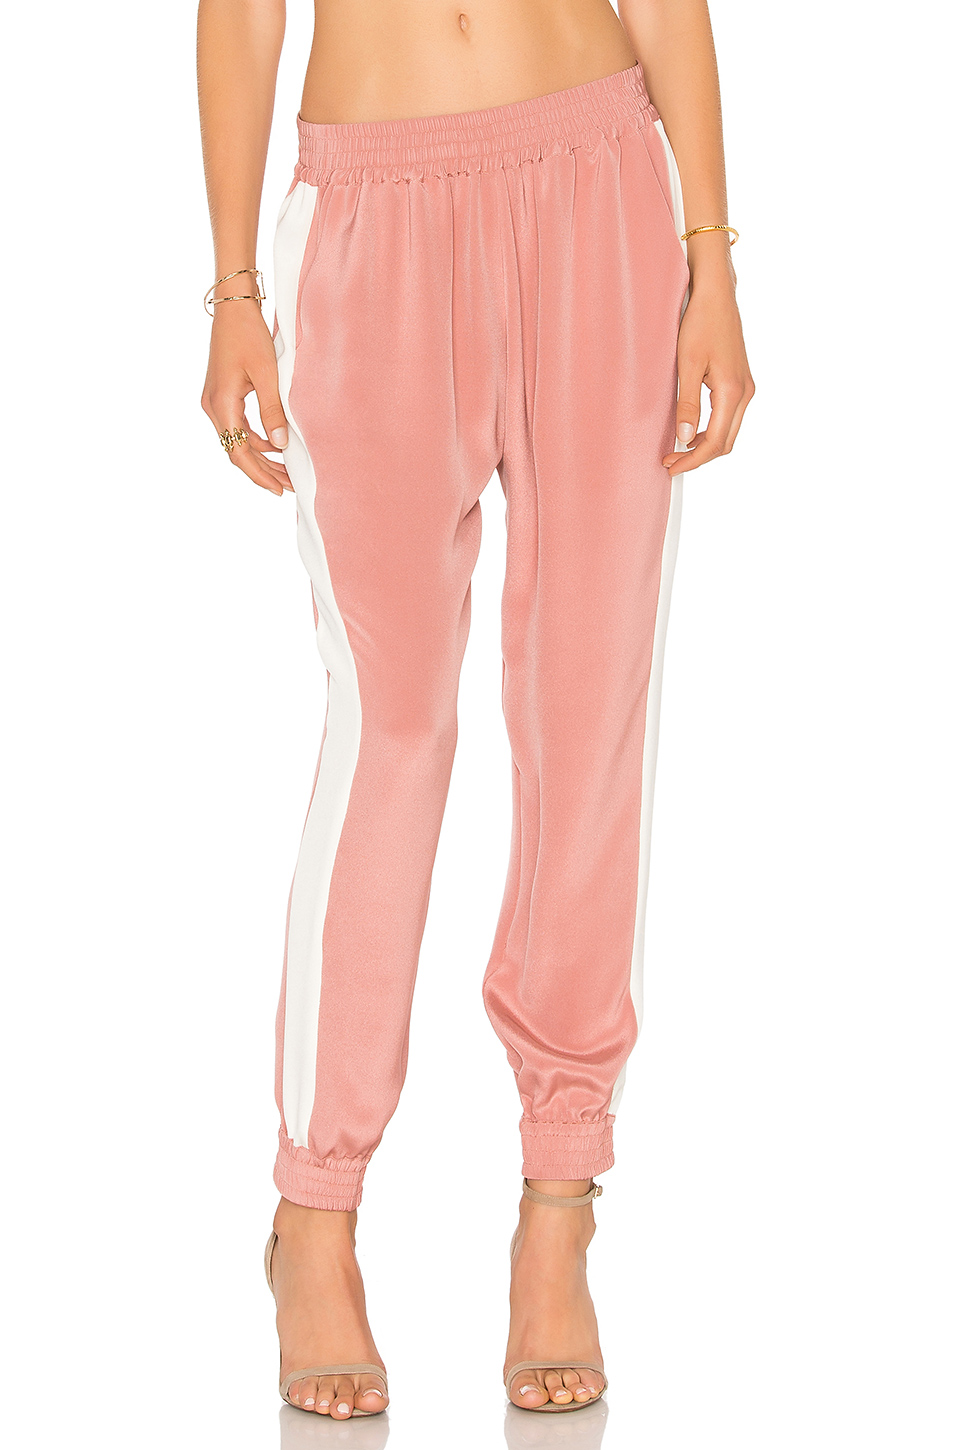 L'ACADEMIE X REVOLVE 'THE SILK' TROUSER